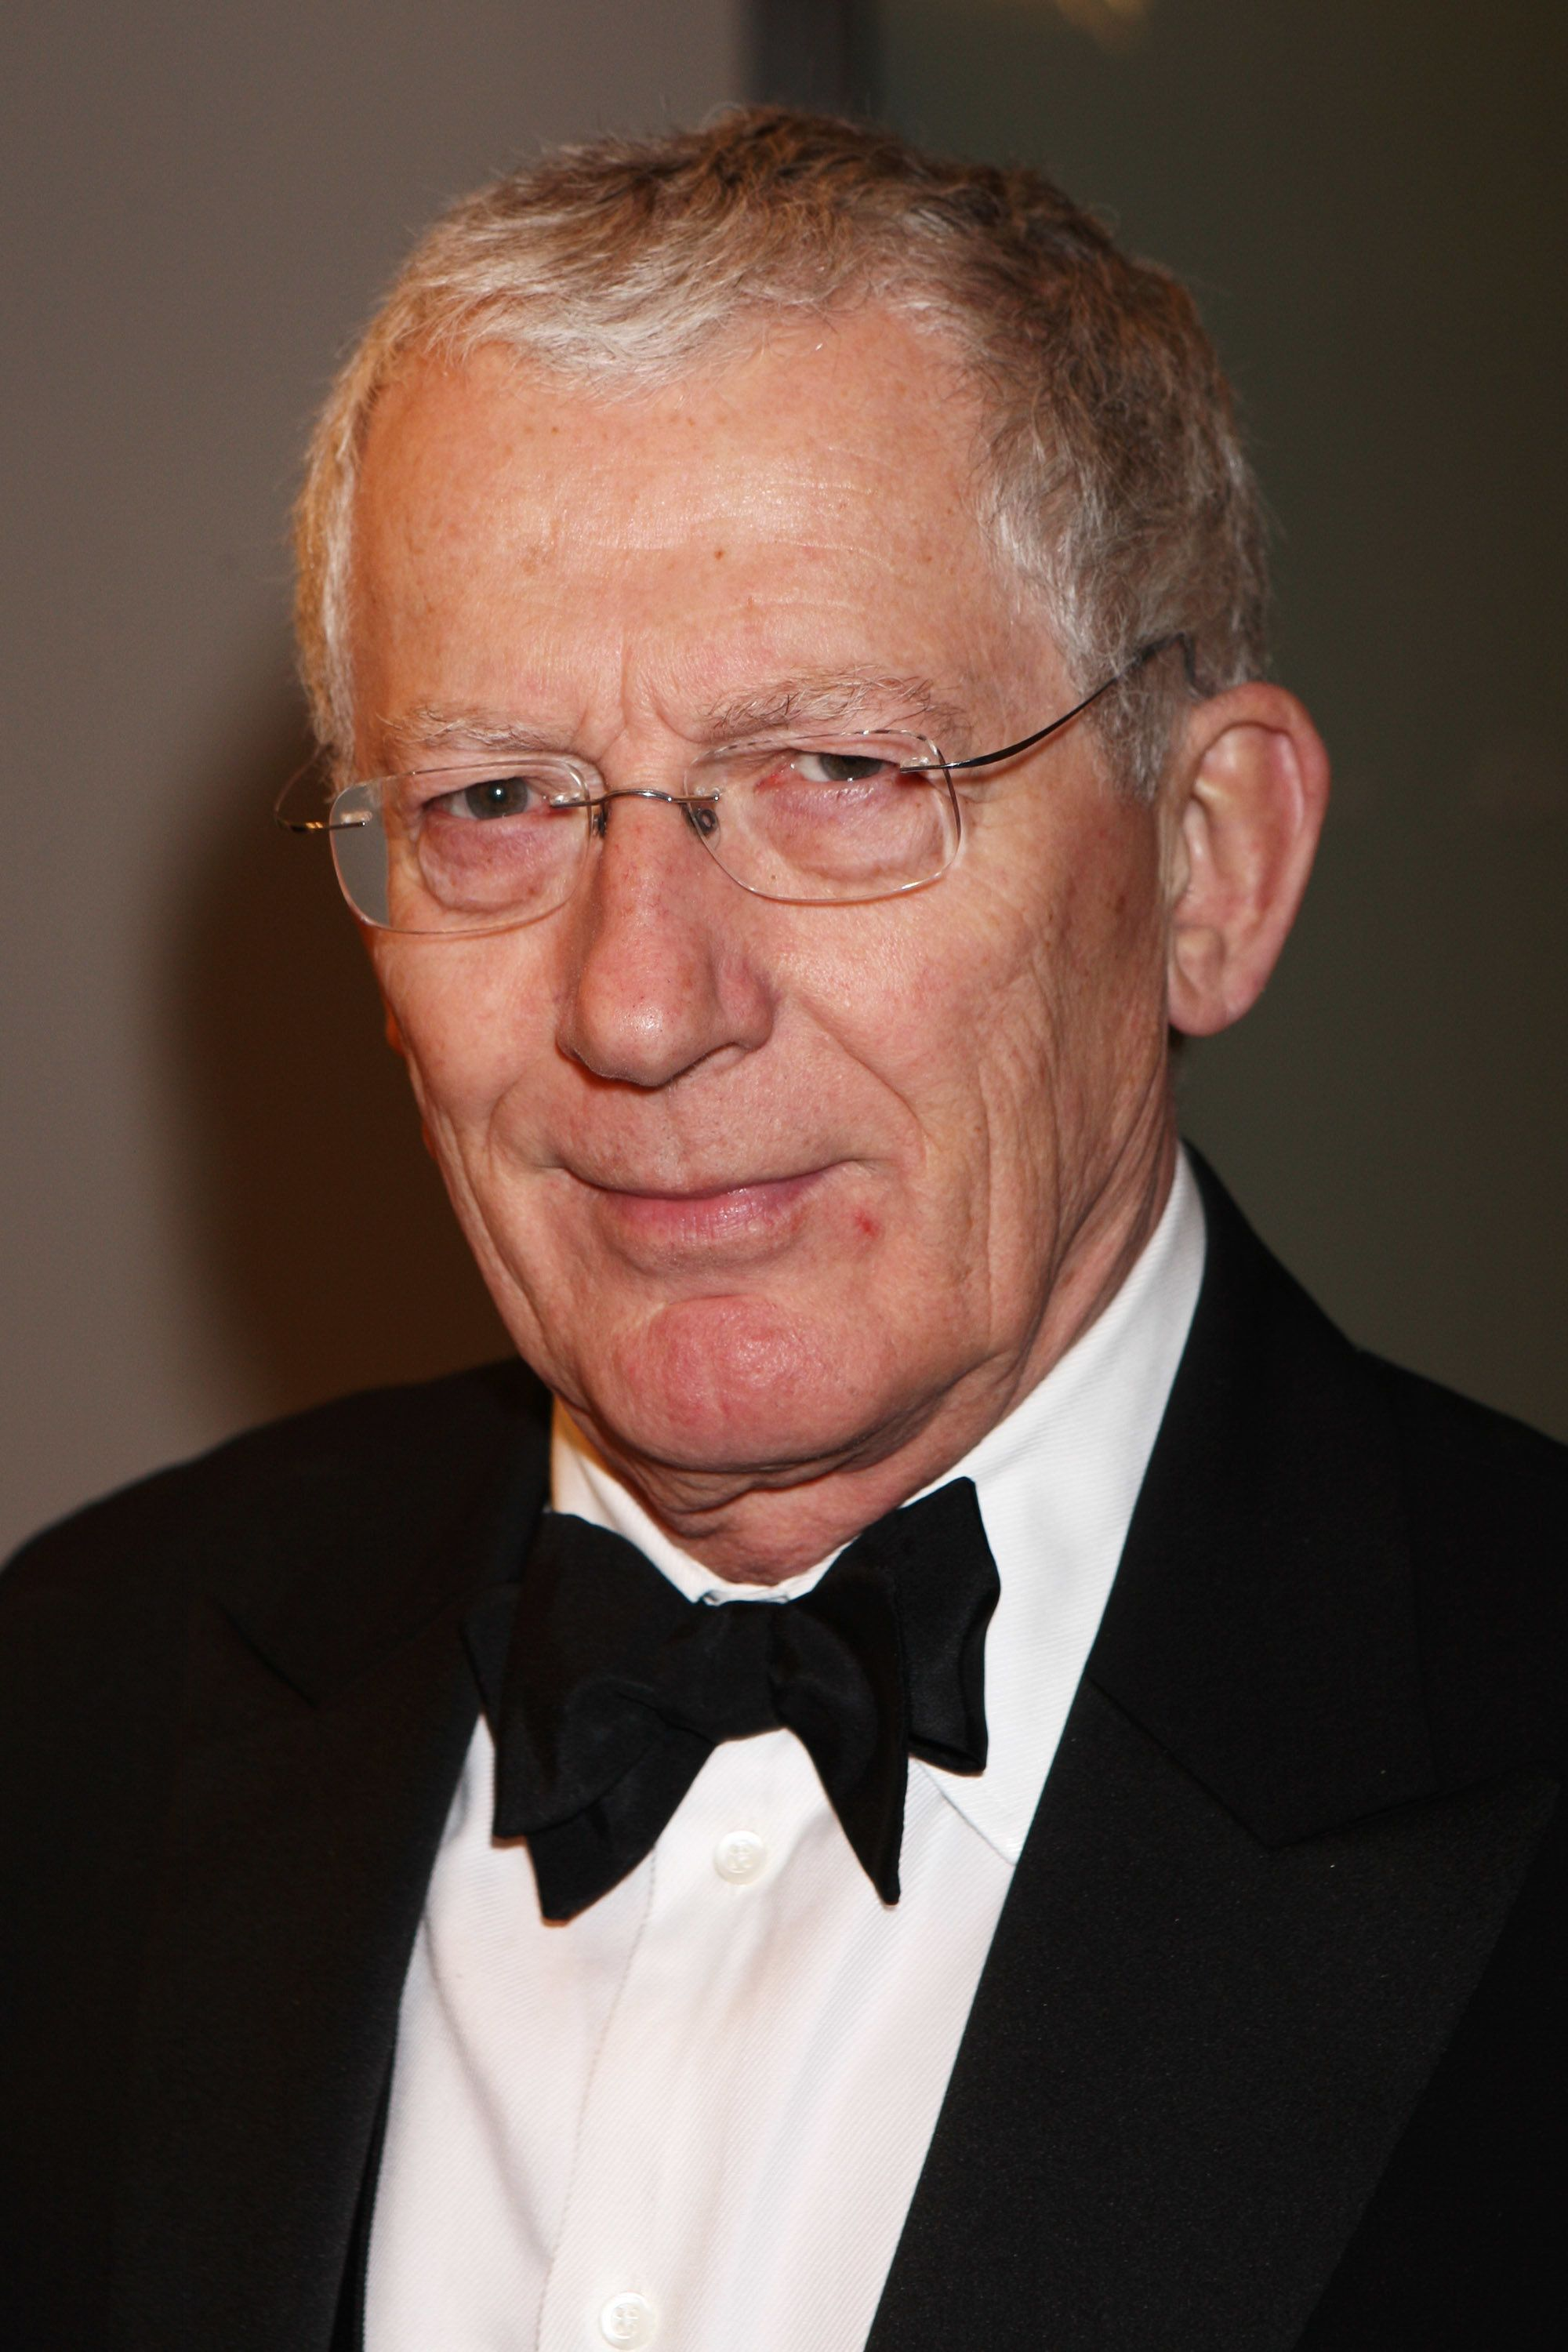 Nick Hewer Says His Ten Years On 'The Apprentice' Was 'A